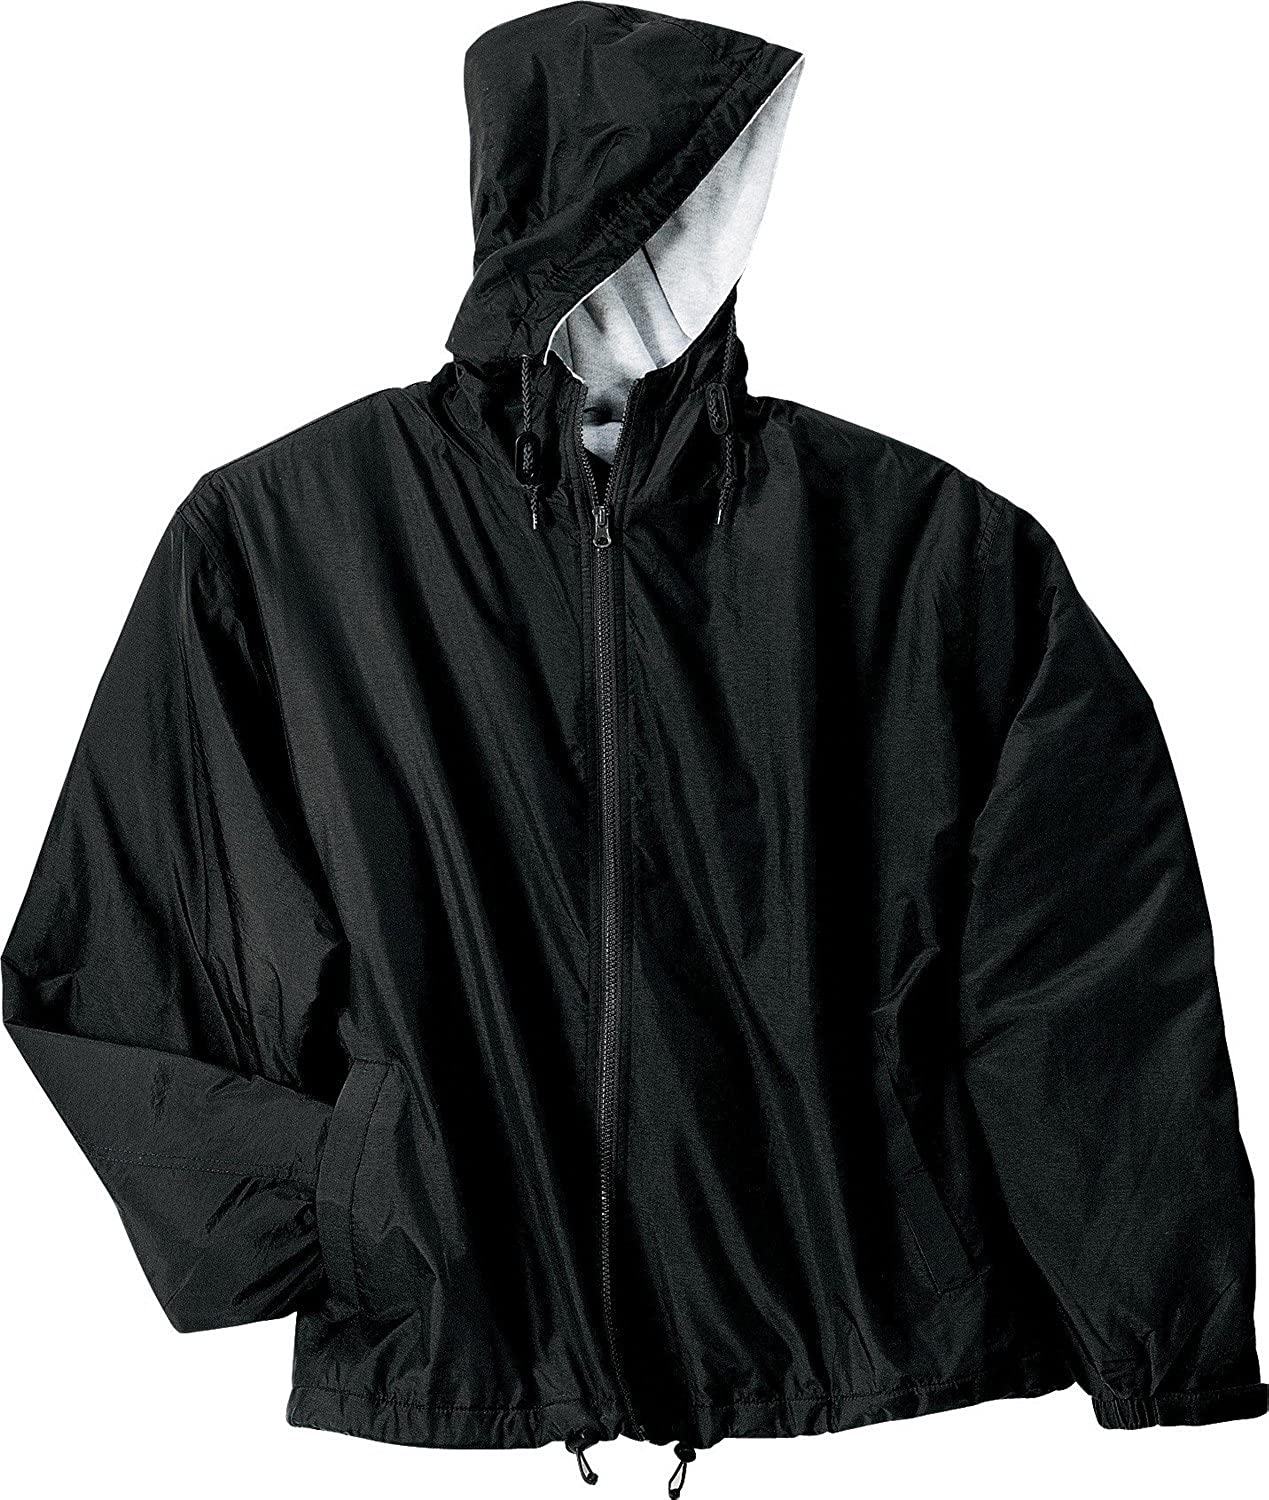 Port Genuine Authority New Free Shipping Team Jacket Black Oxford 2XL Light and